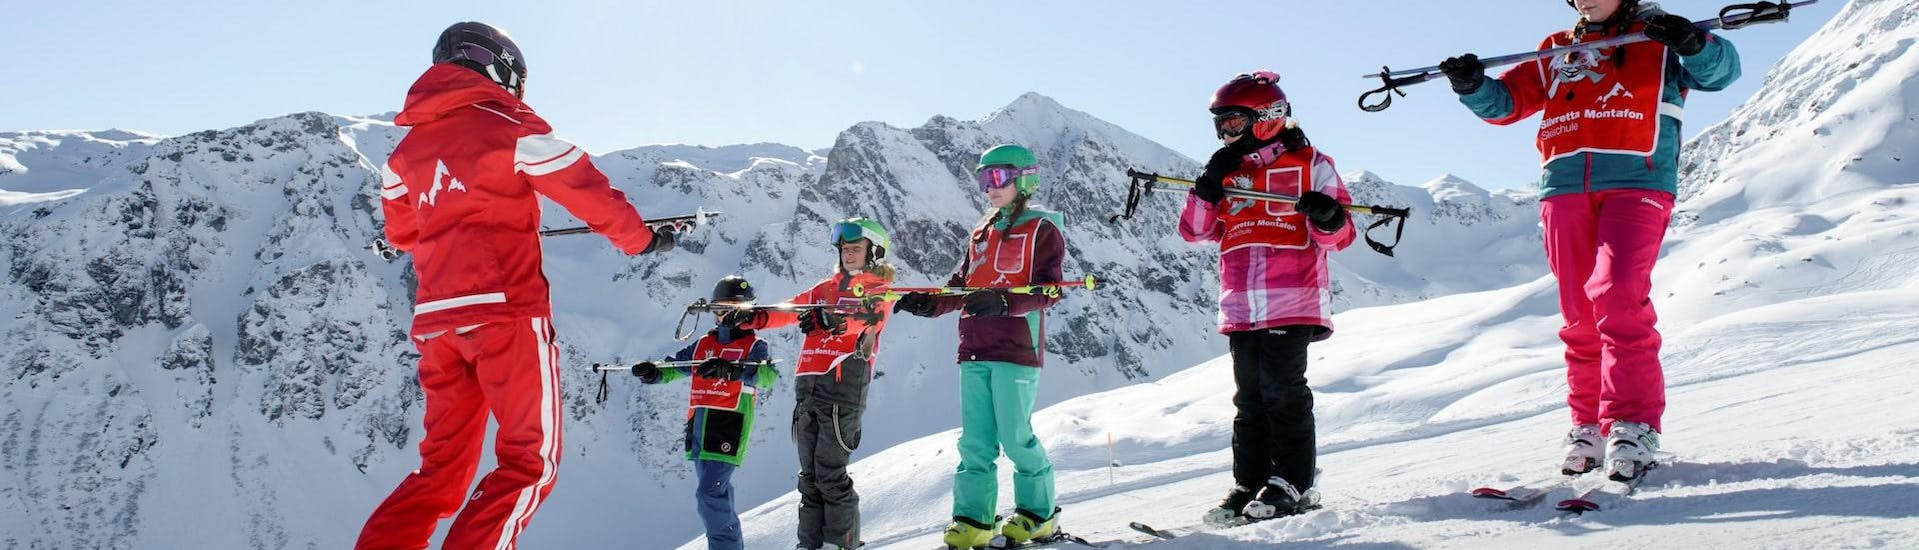 Freeride and Freestyle Group for Kids - All Ages with Skischule Gaschurn-Partenen - Hero image